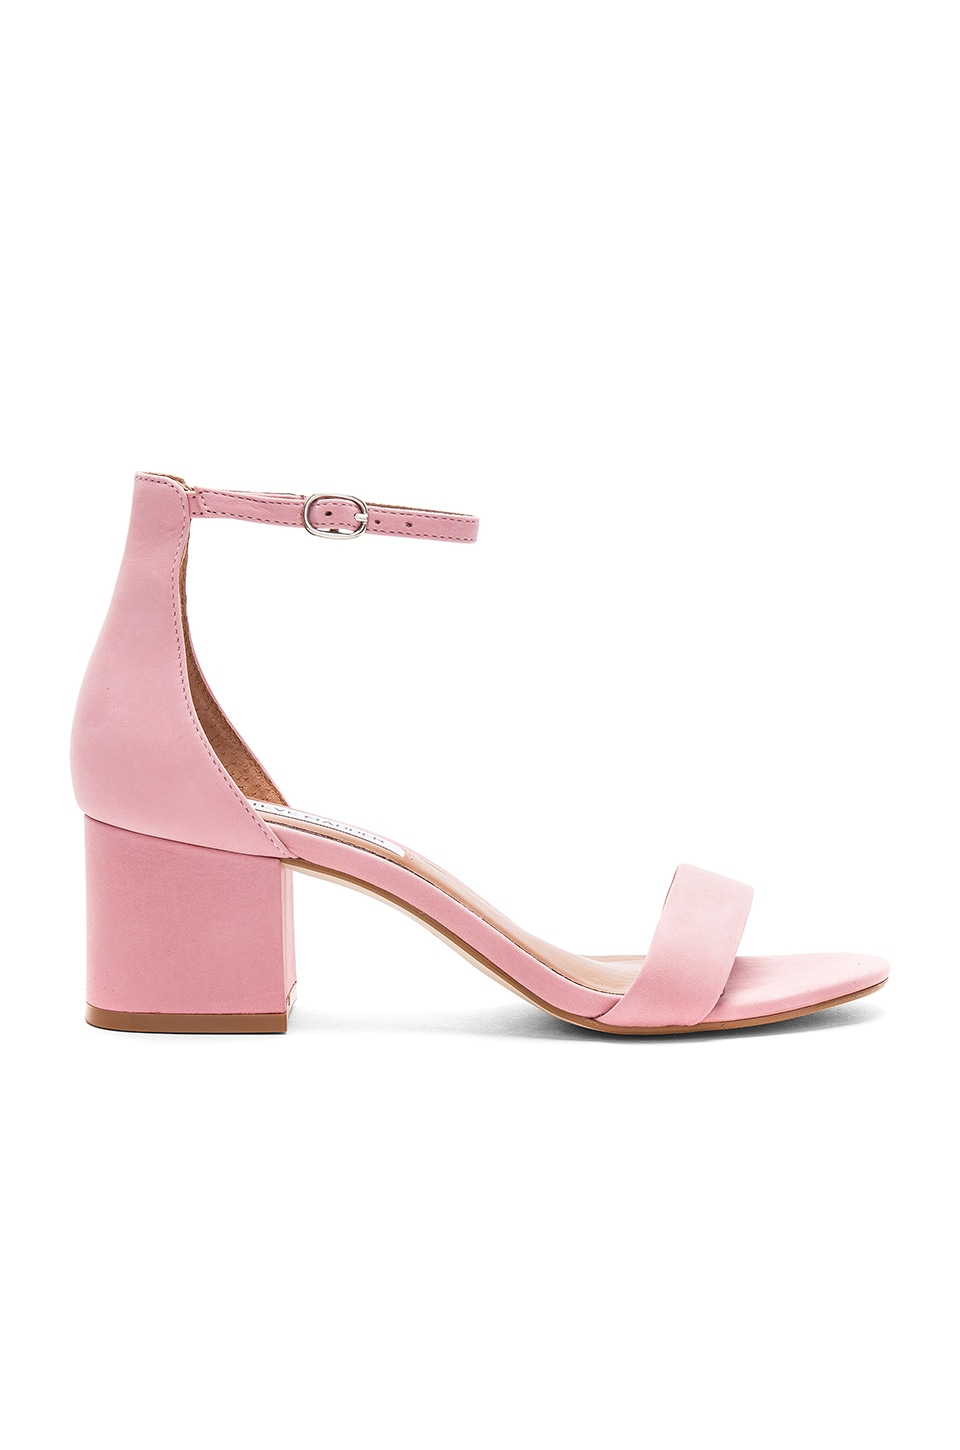 Steve Madden Irenee Sandal in Light Pink